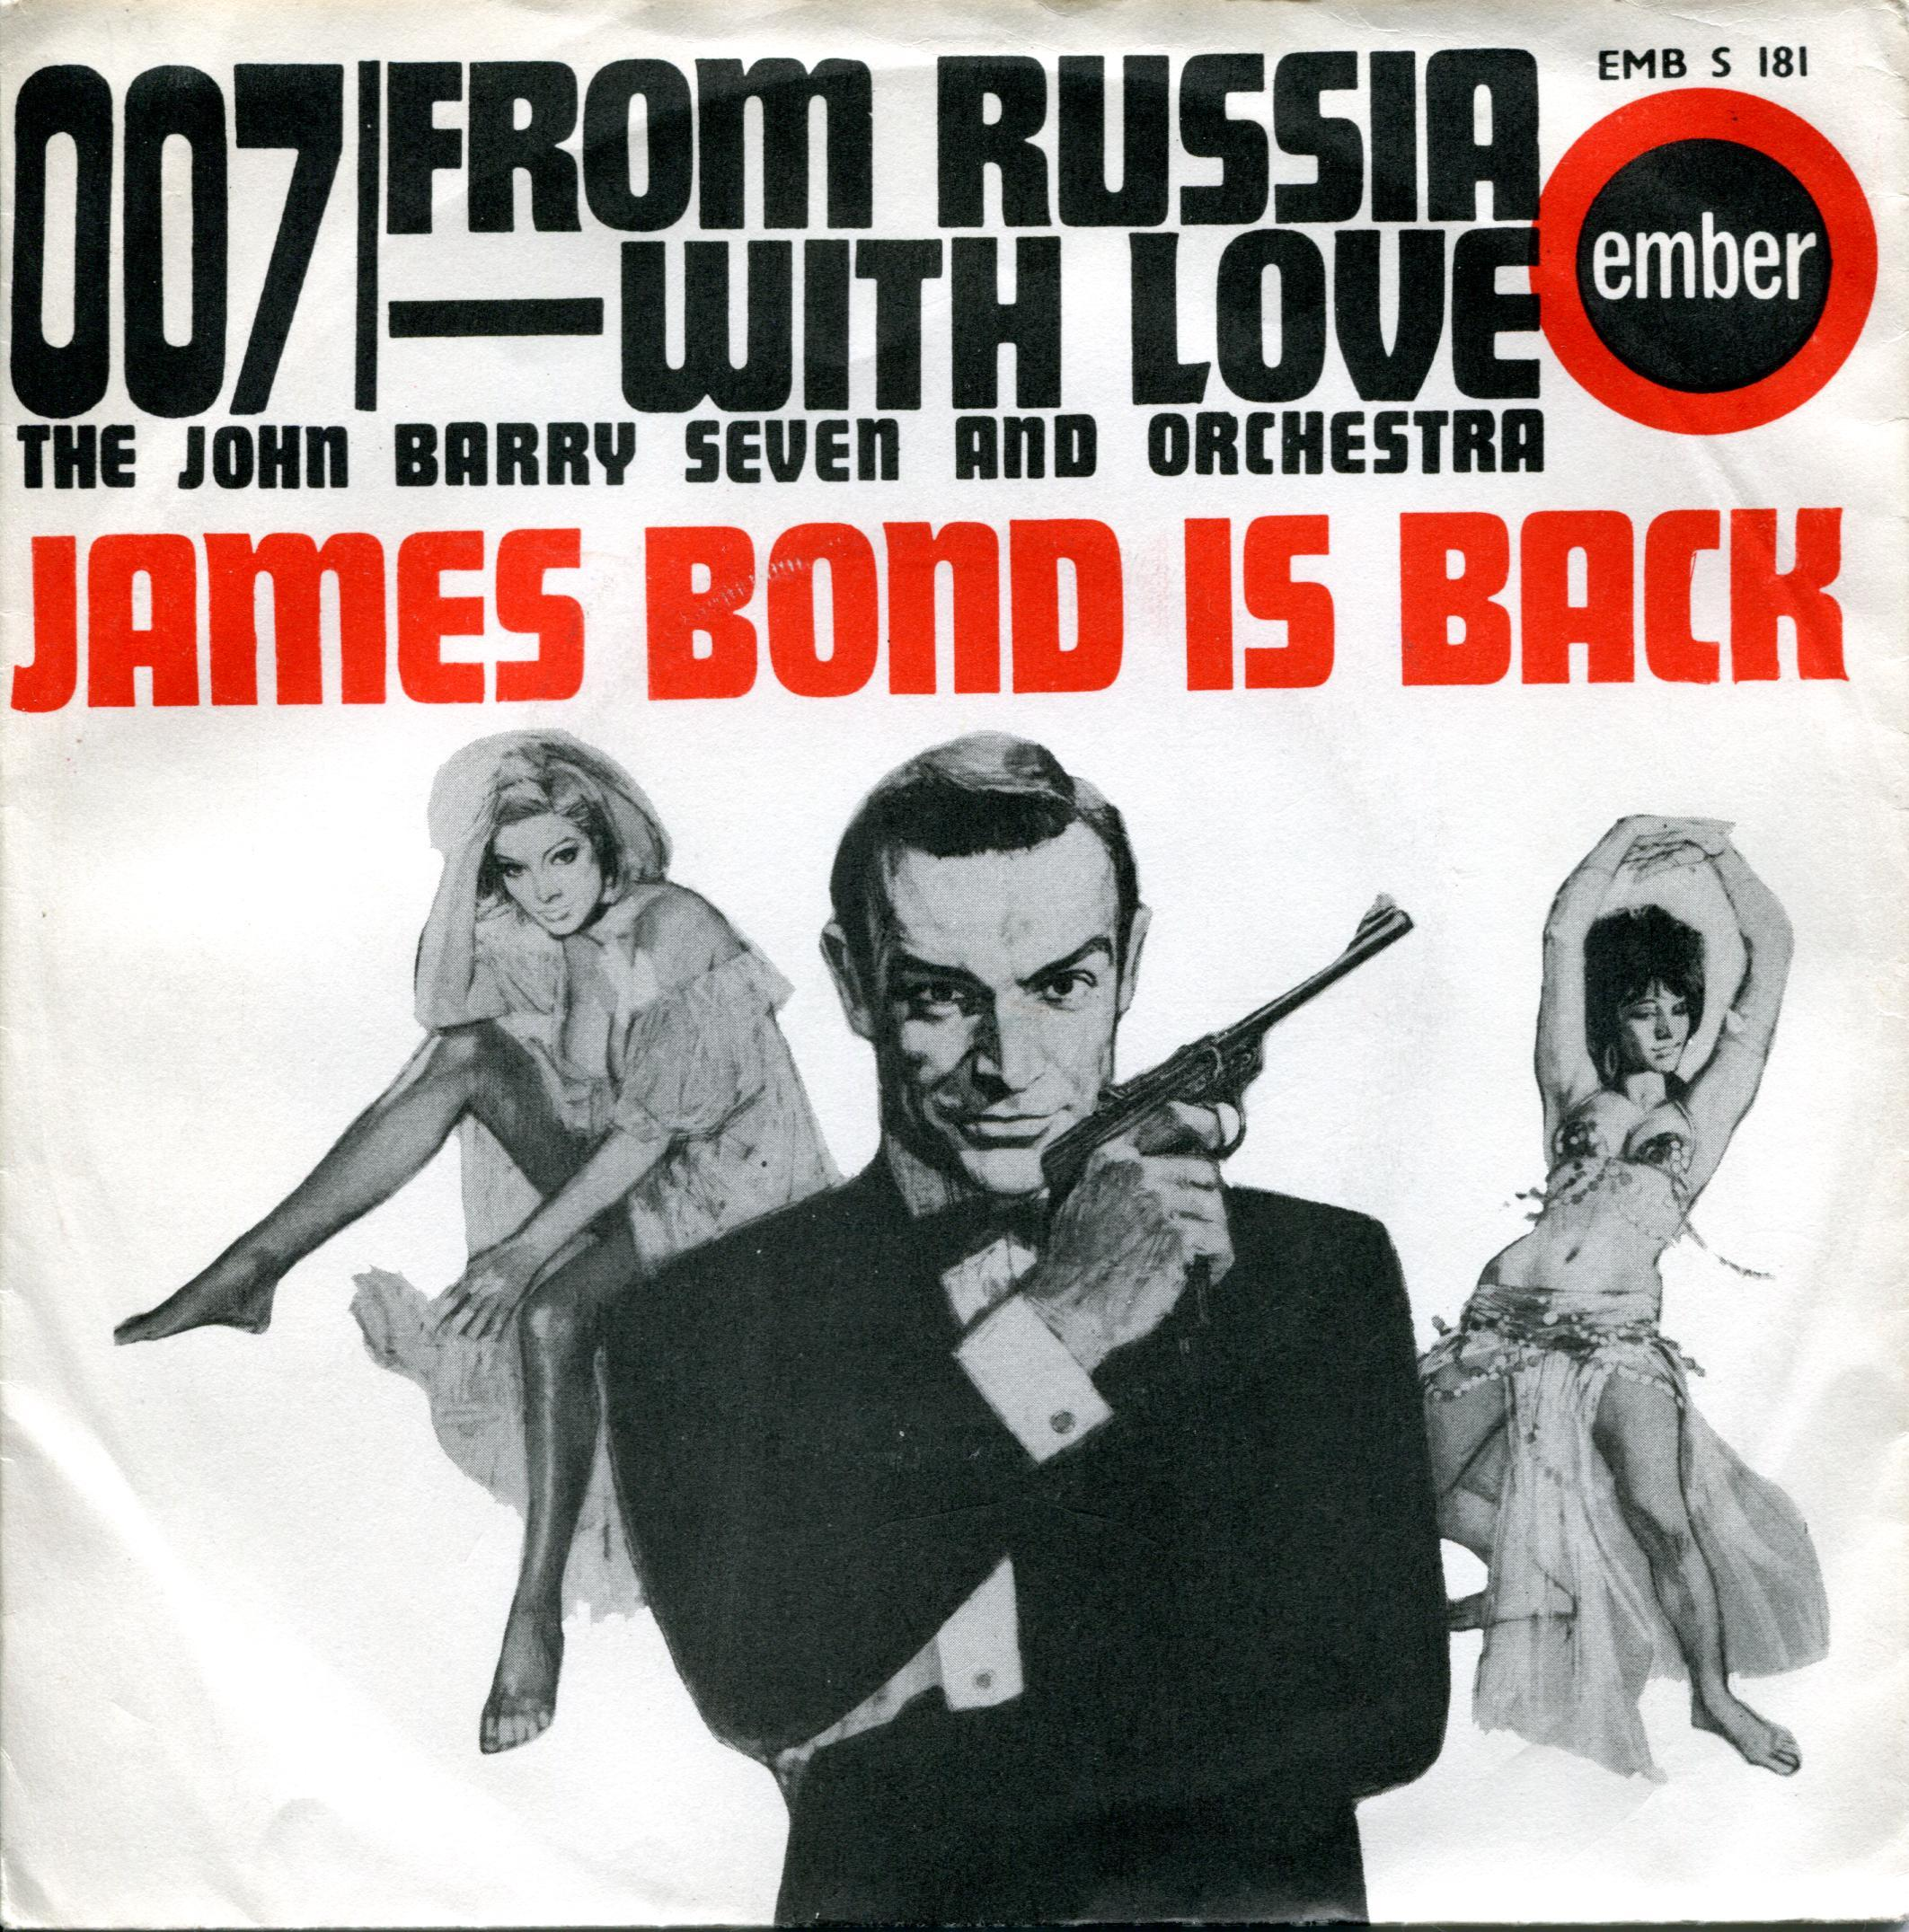 From Russia with Love soundtrack Ember